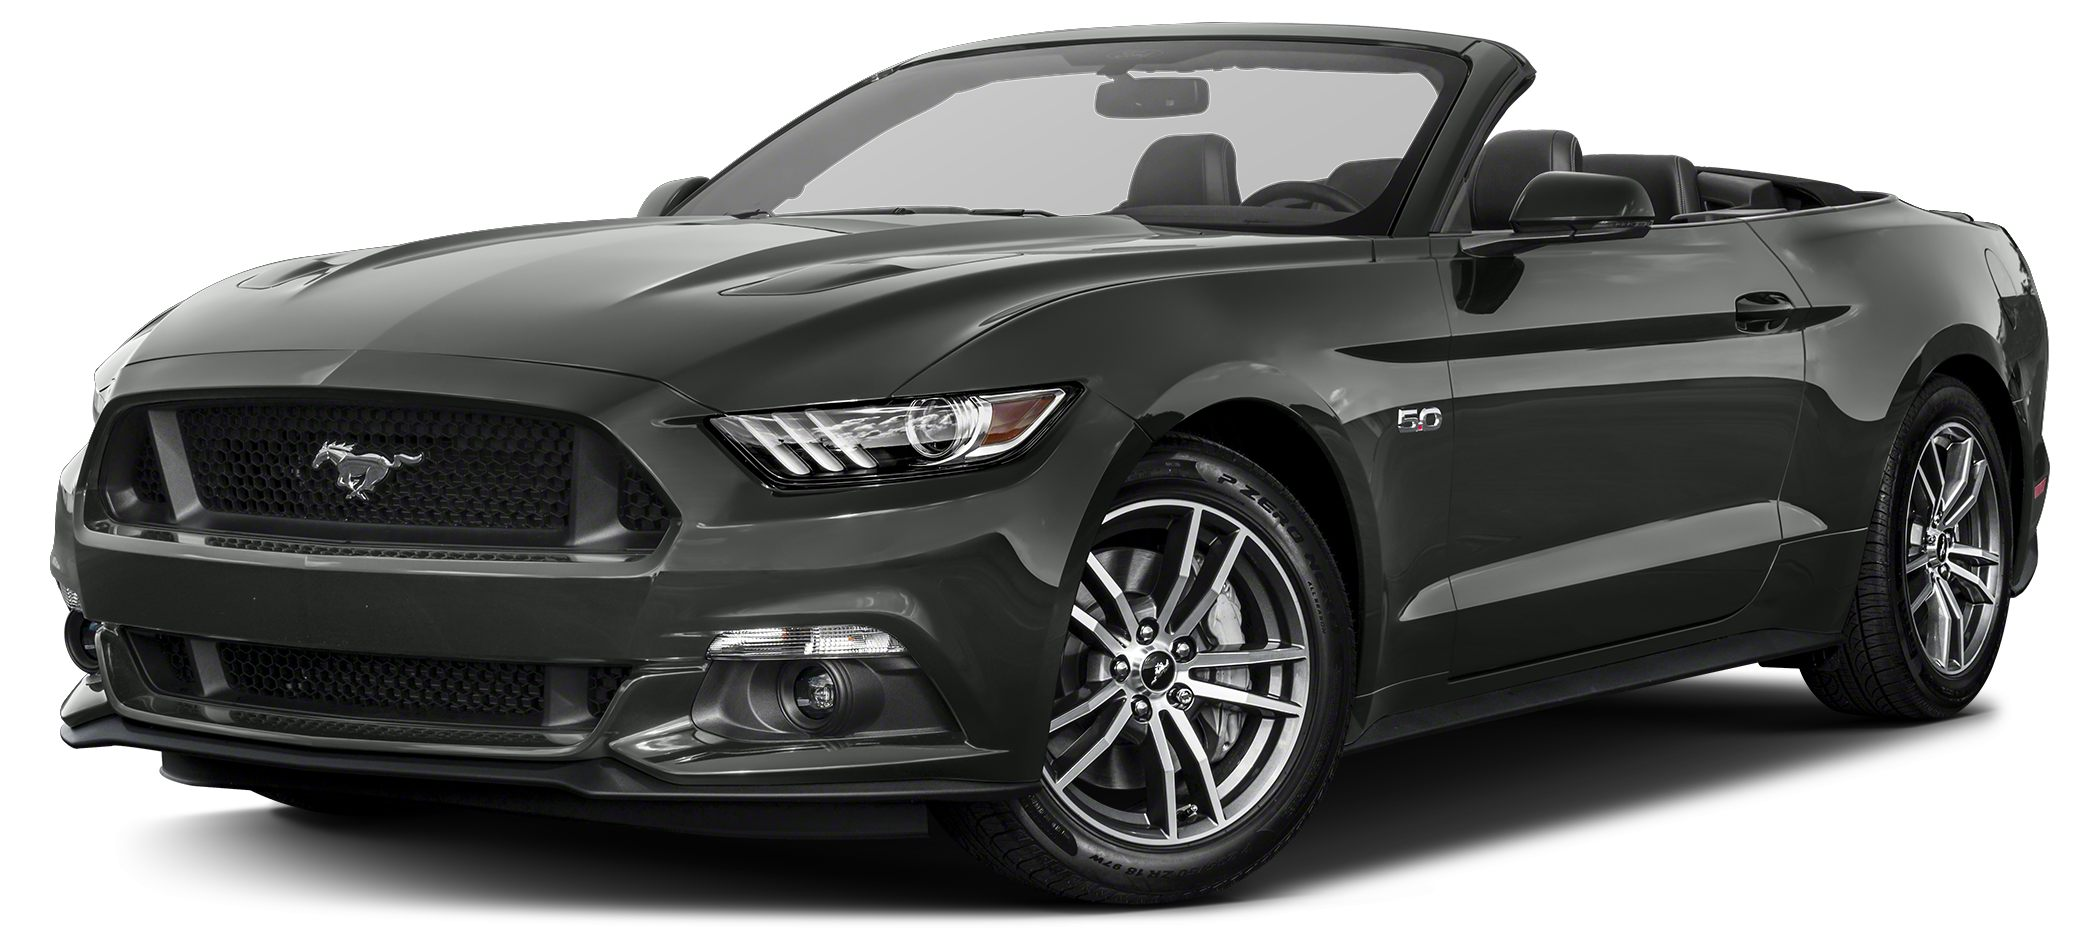 2016 Ford Mustang GT Premium Price includes 500 - RETAIL Customer Cash Miles 2398Color Magnet